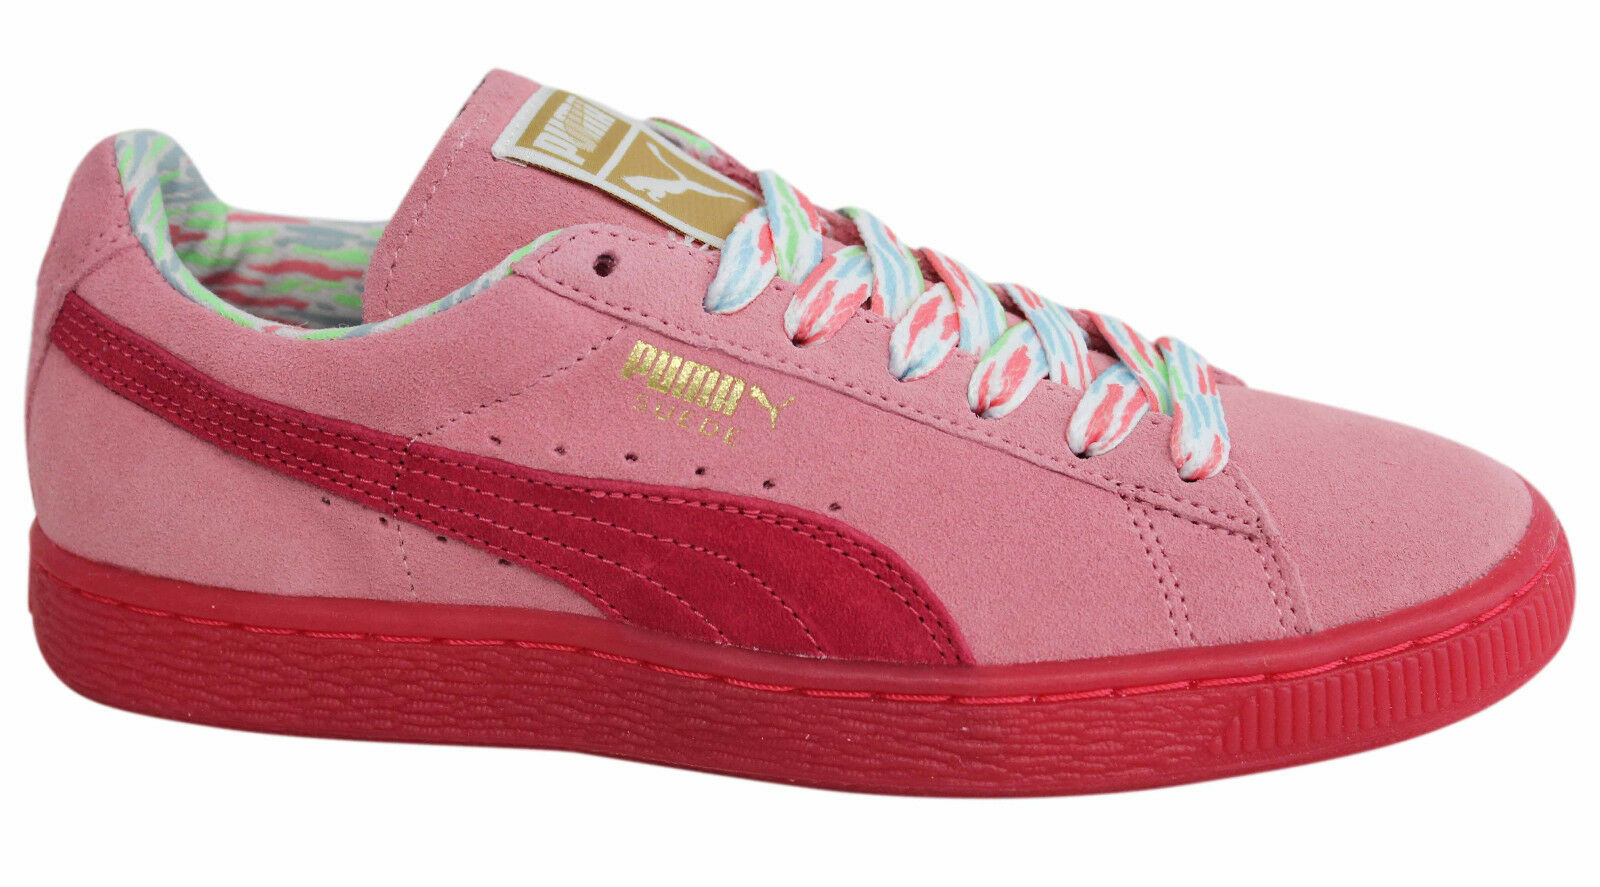 Puma Suede Lace Classic Lo Coast Donna Lace Suede Up Pink Trainers 357514 01 M1 9f9fa6